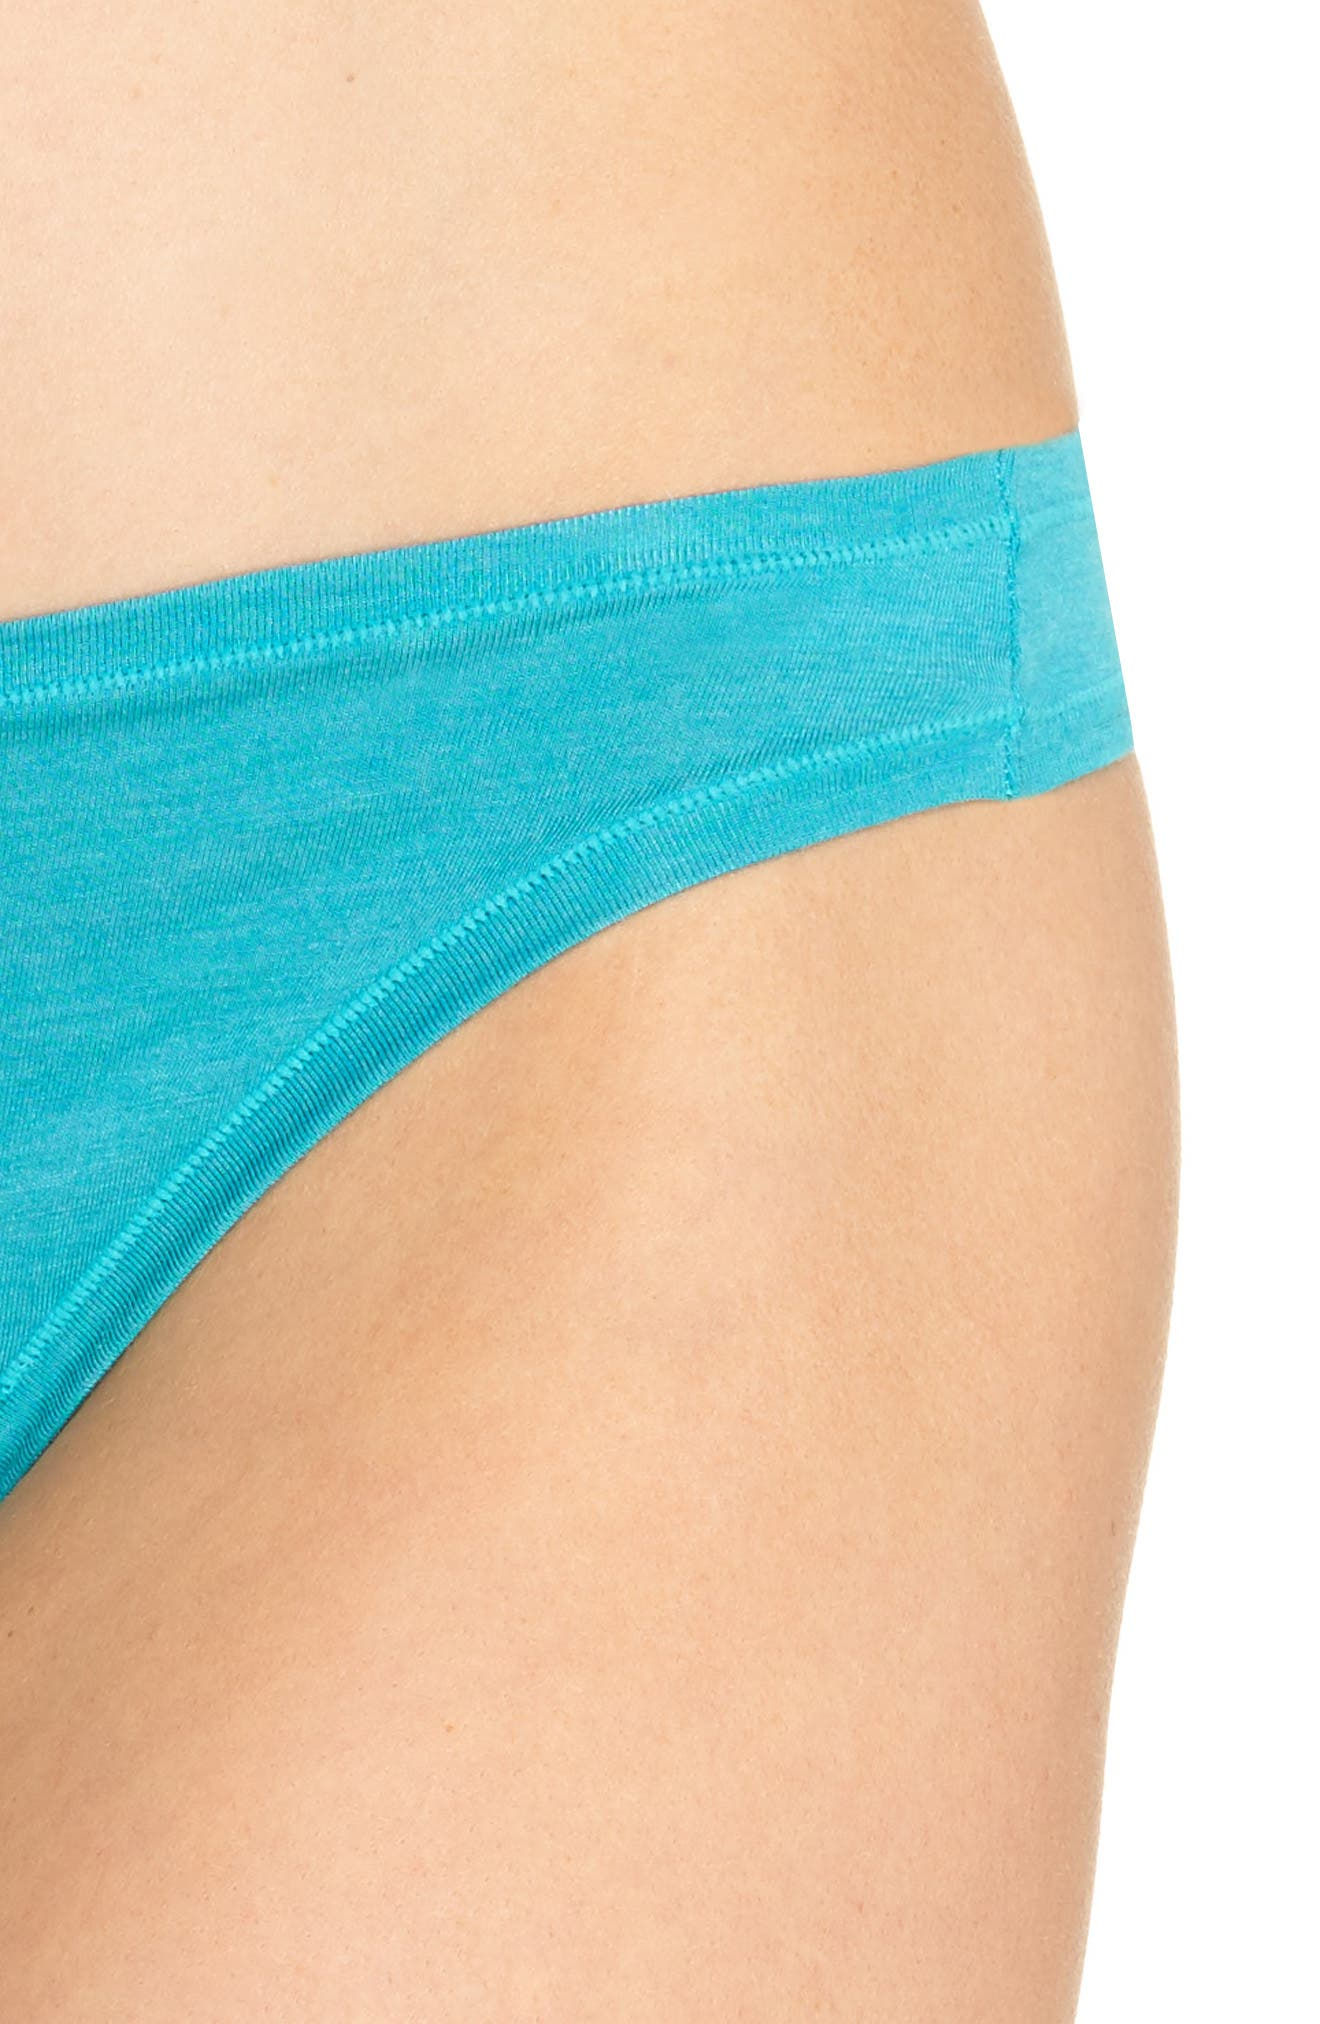 Bliss Essence Thong,                             Alternate thumbnail 5, color,                             Turquoise